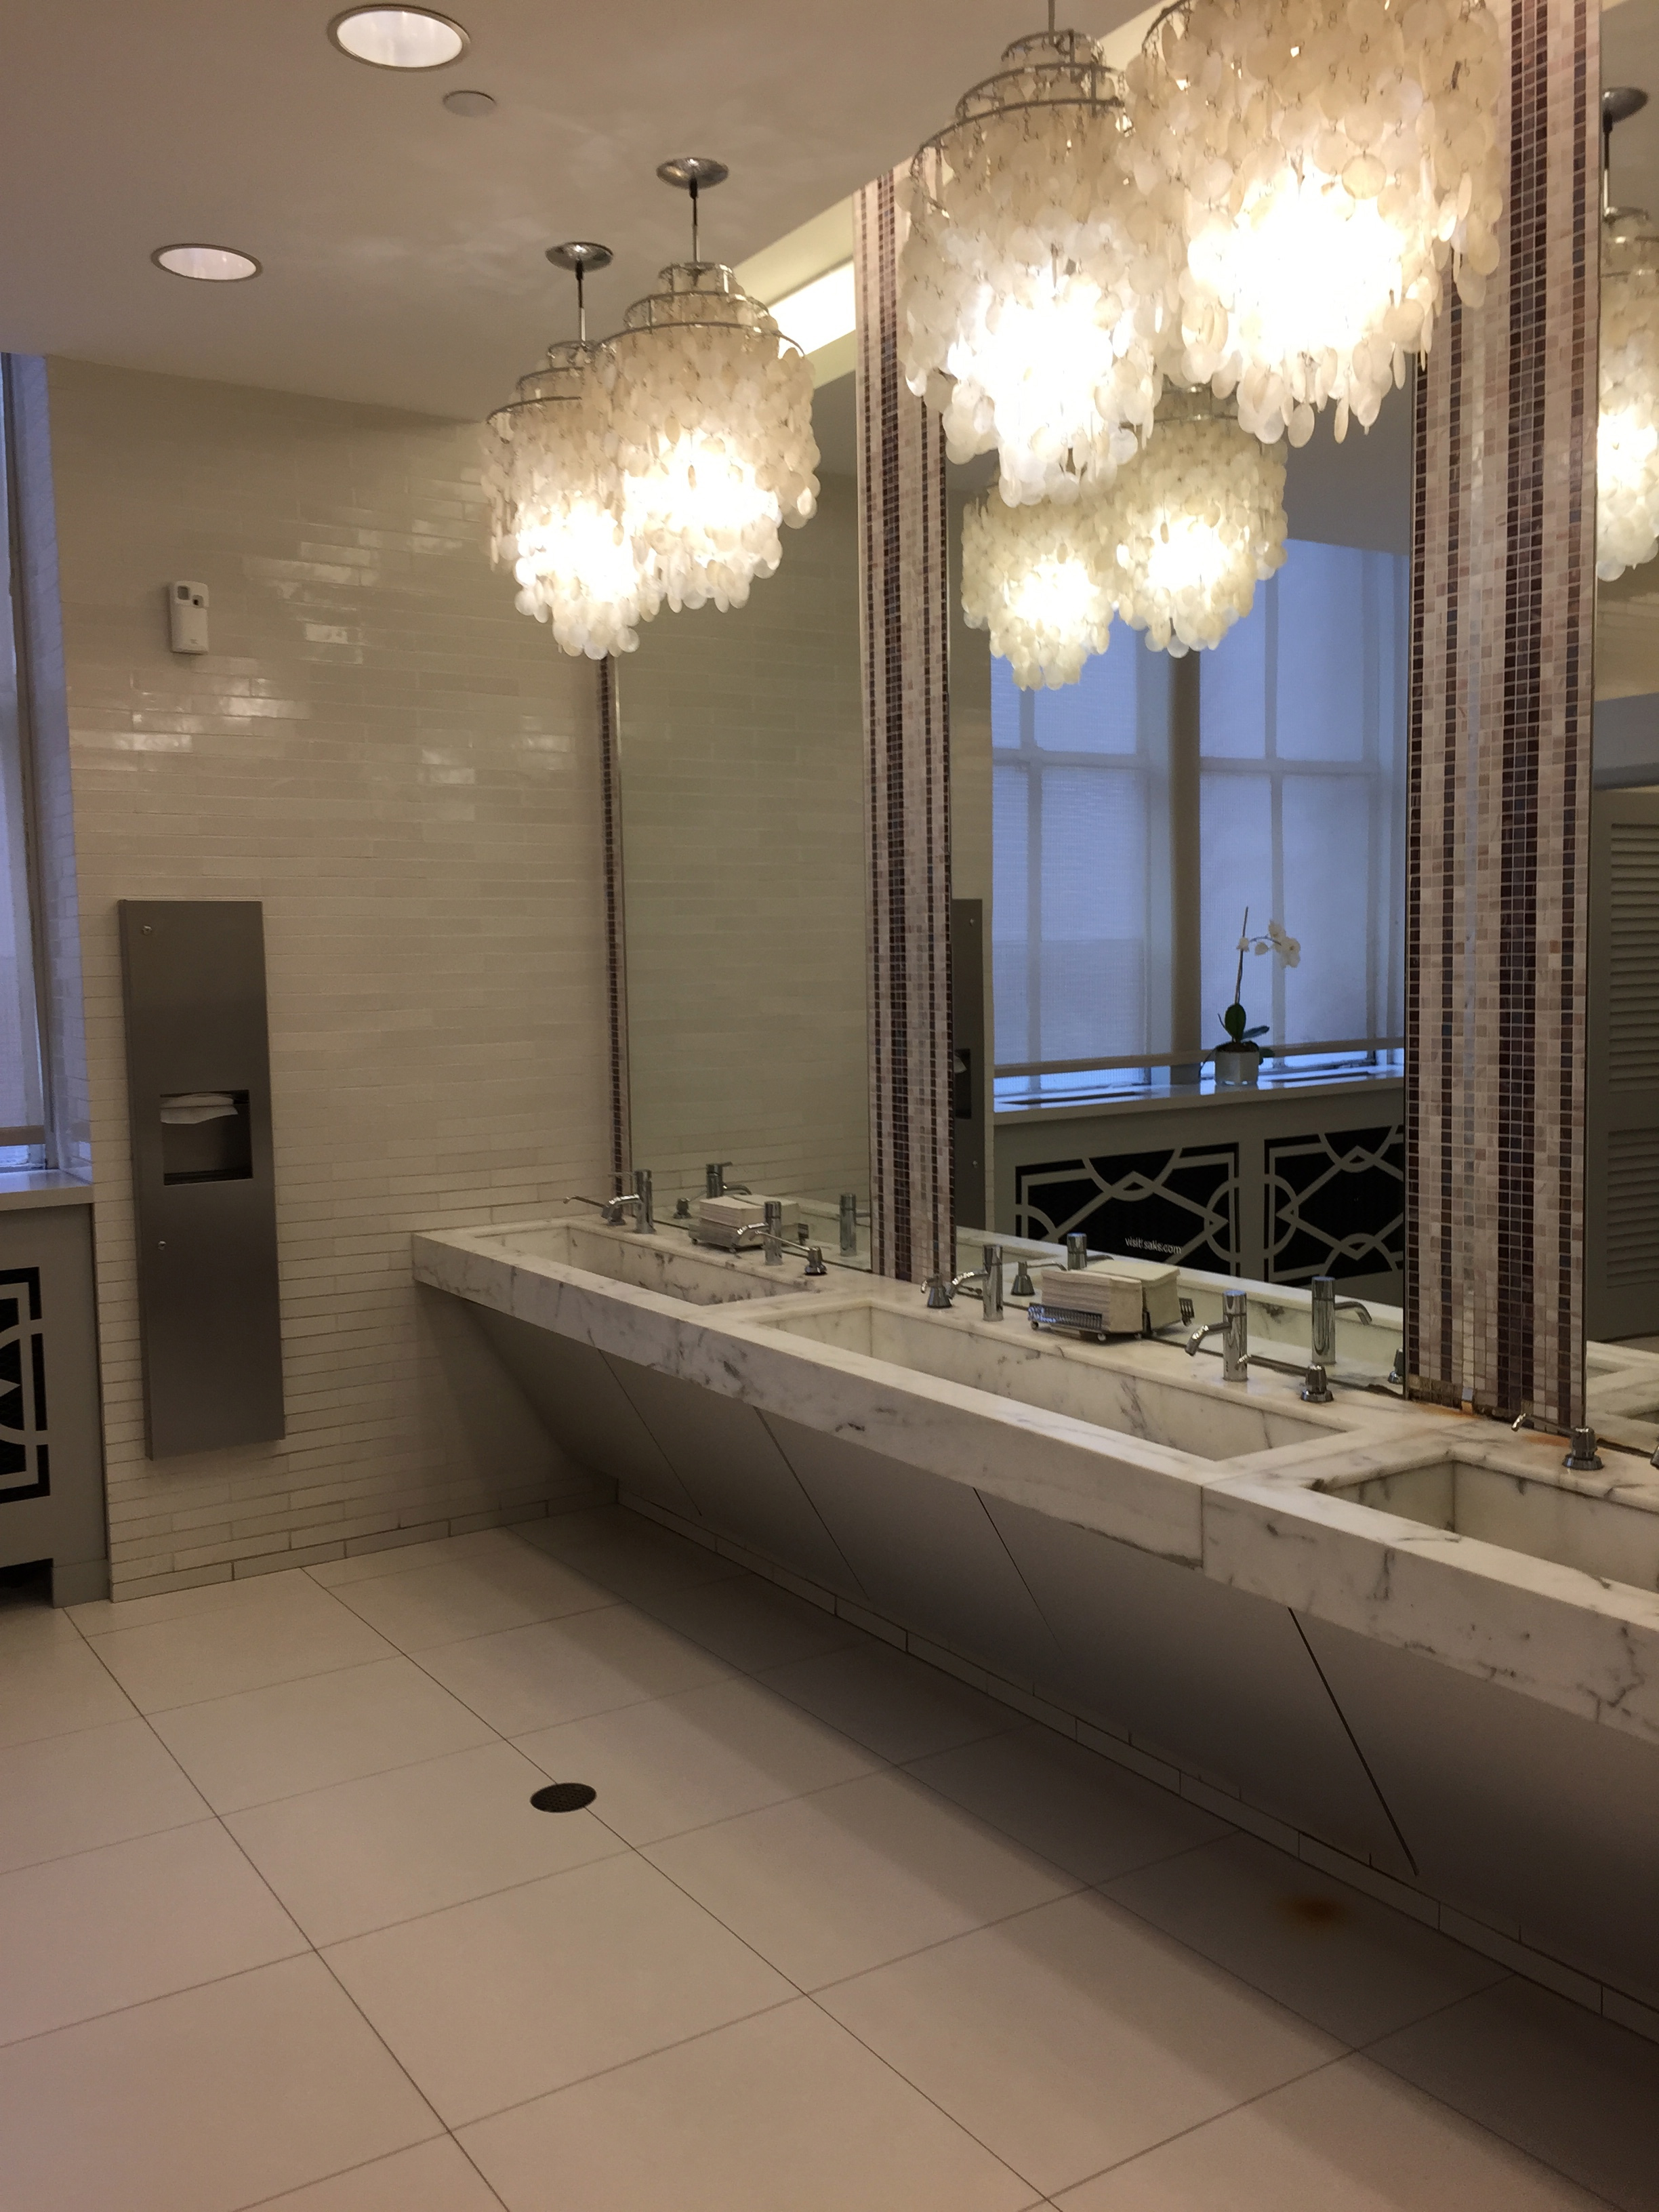 It felt a little weird to be taking pictures in the women's bathroom at Saks Fifth Avenue.  But isn't it fantastic?  The tiled walls, the marble counters, and the dramatic light fixtures and elements to repeat.  www.saranobledesigns.com